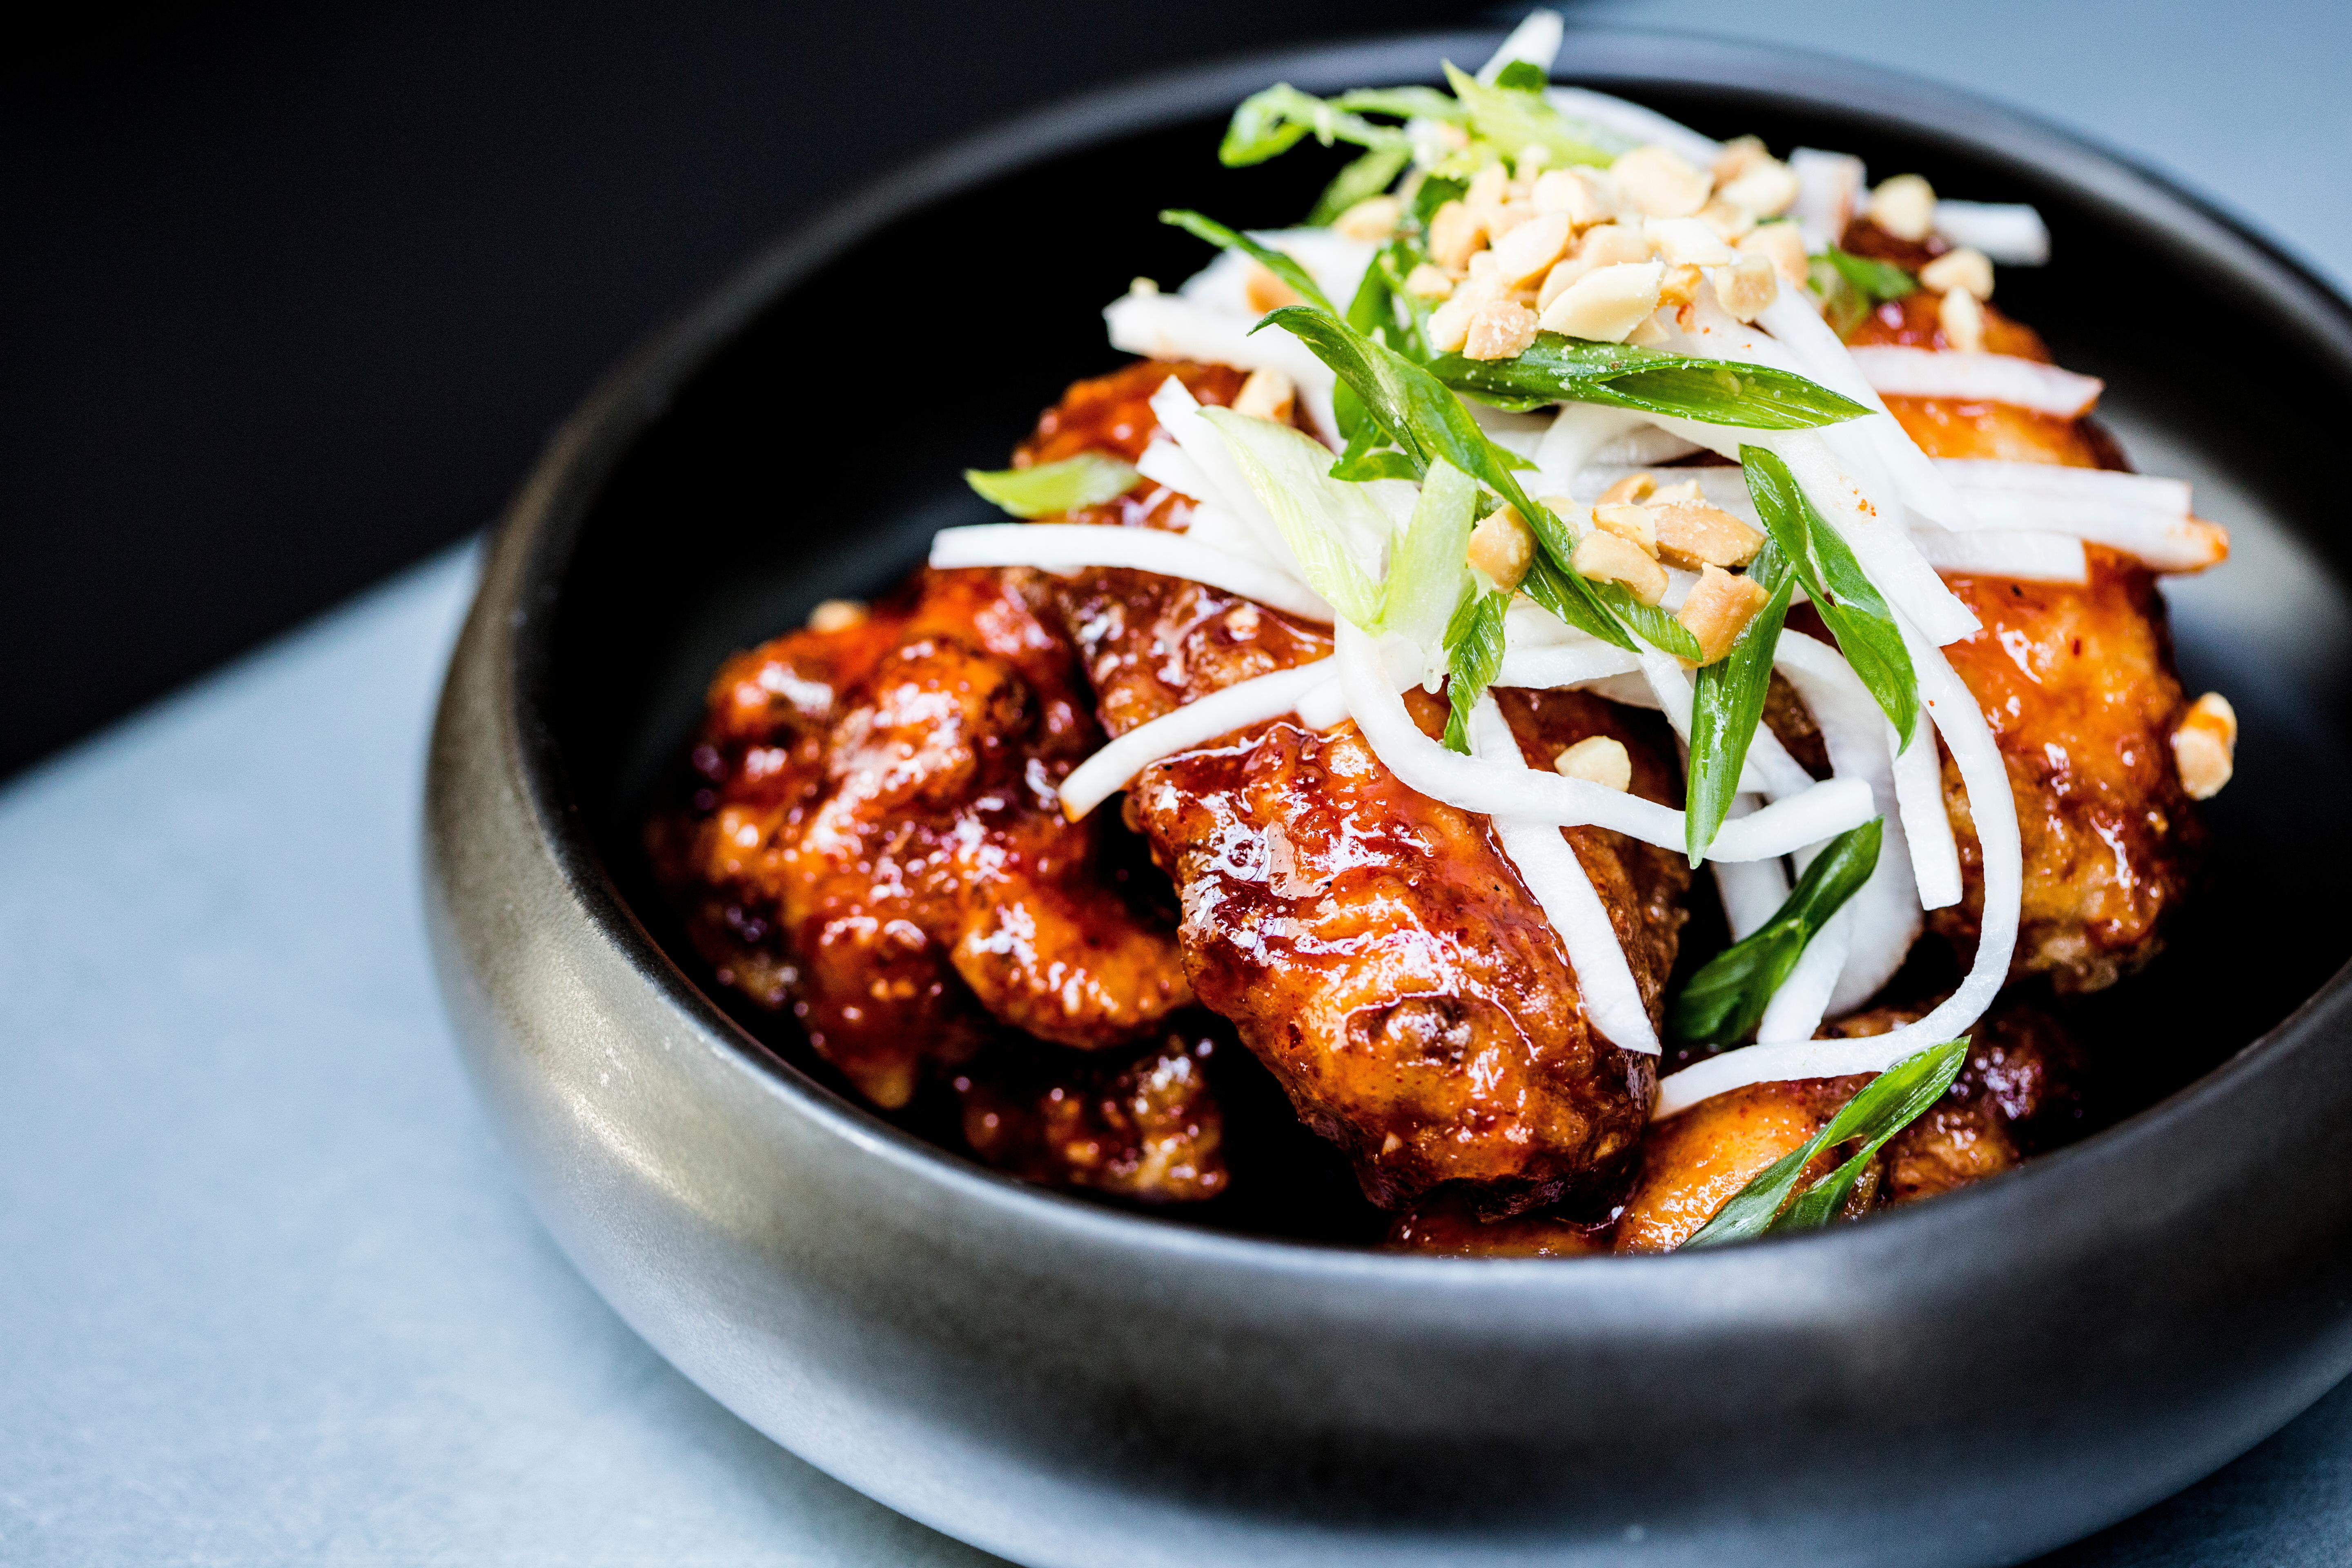 <p>Dirty Habit</p><p>At the hip spot at the Hotel Monaco, chef Kyoo Eom's fried chicken wings ($12) are available on both the dinner and late night menus. The signature shareable dish is inspired by Eom's Korean heritage, and comes with peanuts, chili threads and gochujang sauce. (Image: Dirty Habit)</p>